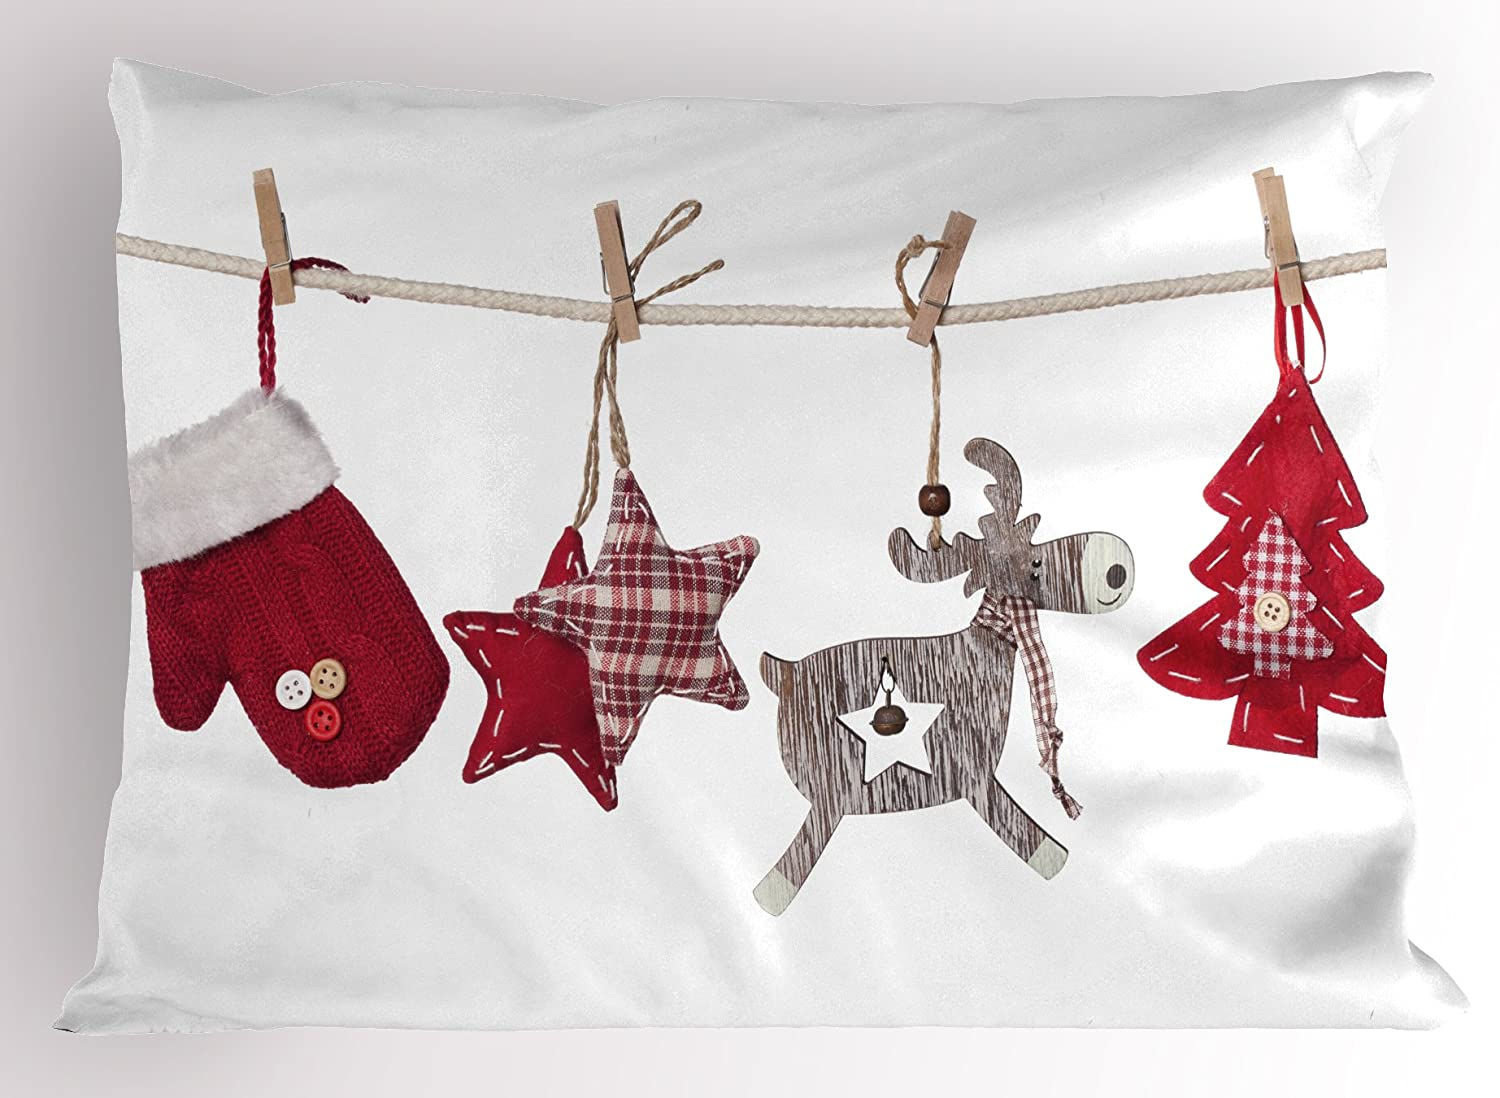 Amazon Com Ambesonne Christmas Pillow Sham Traditional Xmas Celebration Items Hanging From Rope With Clothespins Retro Decorative Standard Queen Size Printed Pillowcase 30 X 20 Cream Red Home Kitchen